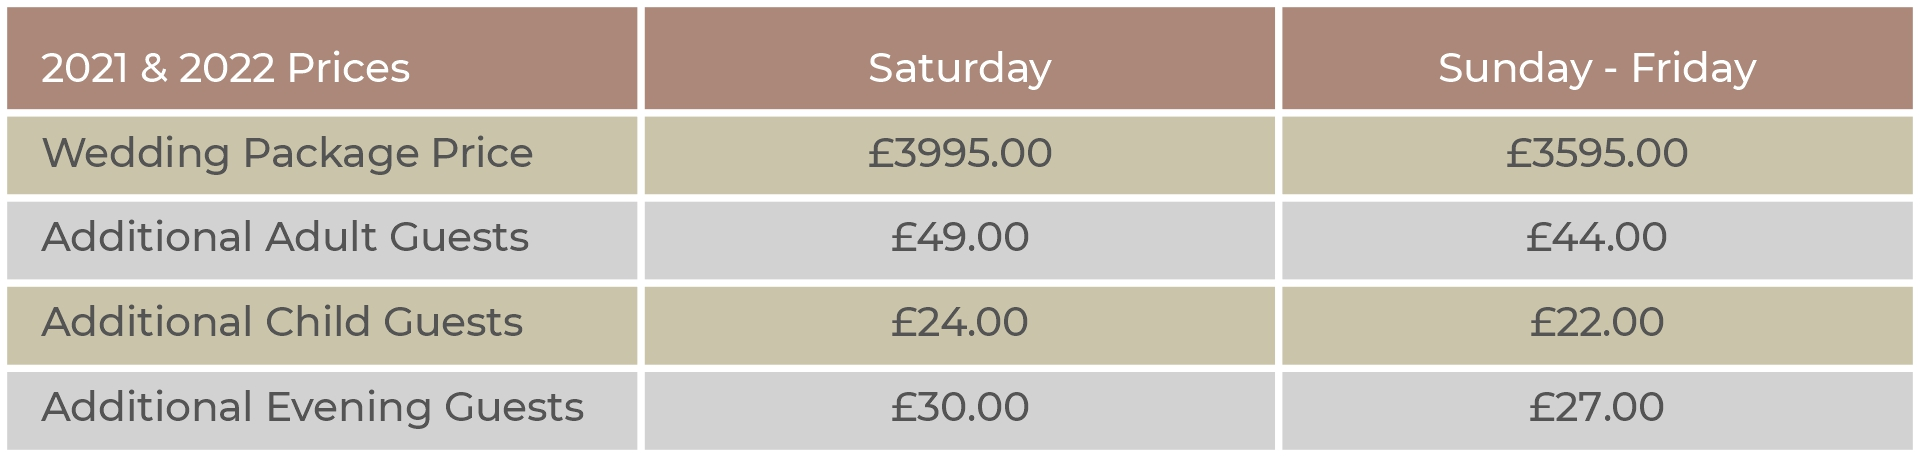 Afternoon Tea Package Prices 21-22